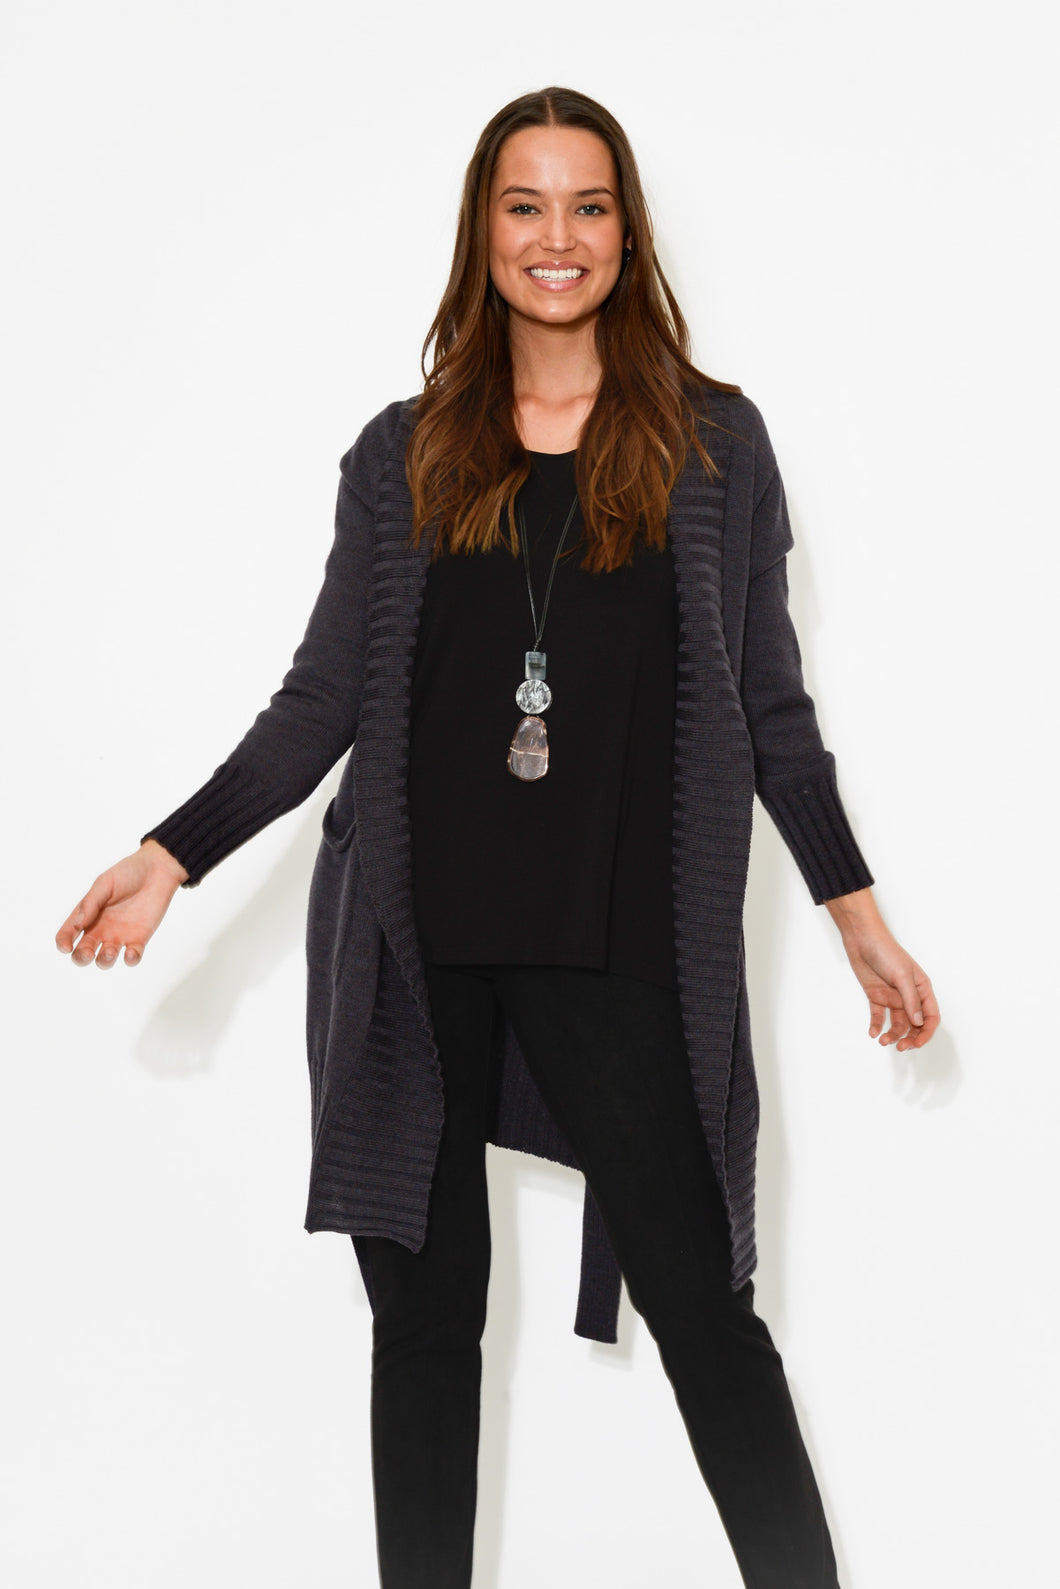 Juno Charcoal Merino Wool Cardigan - Blue Bungalow